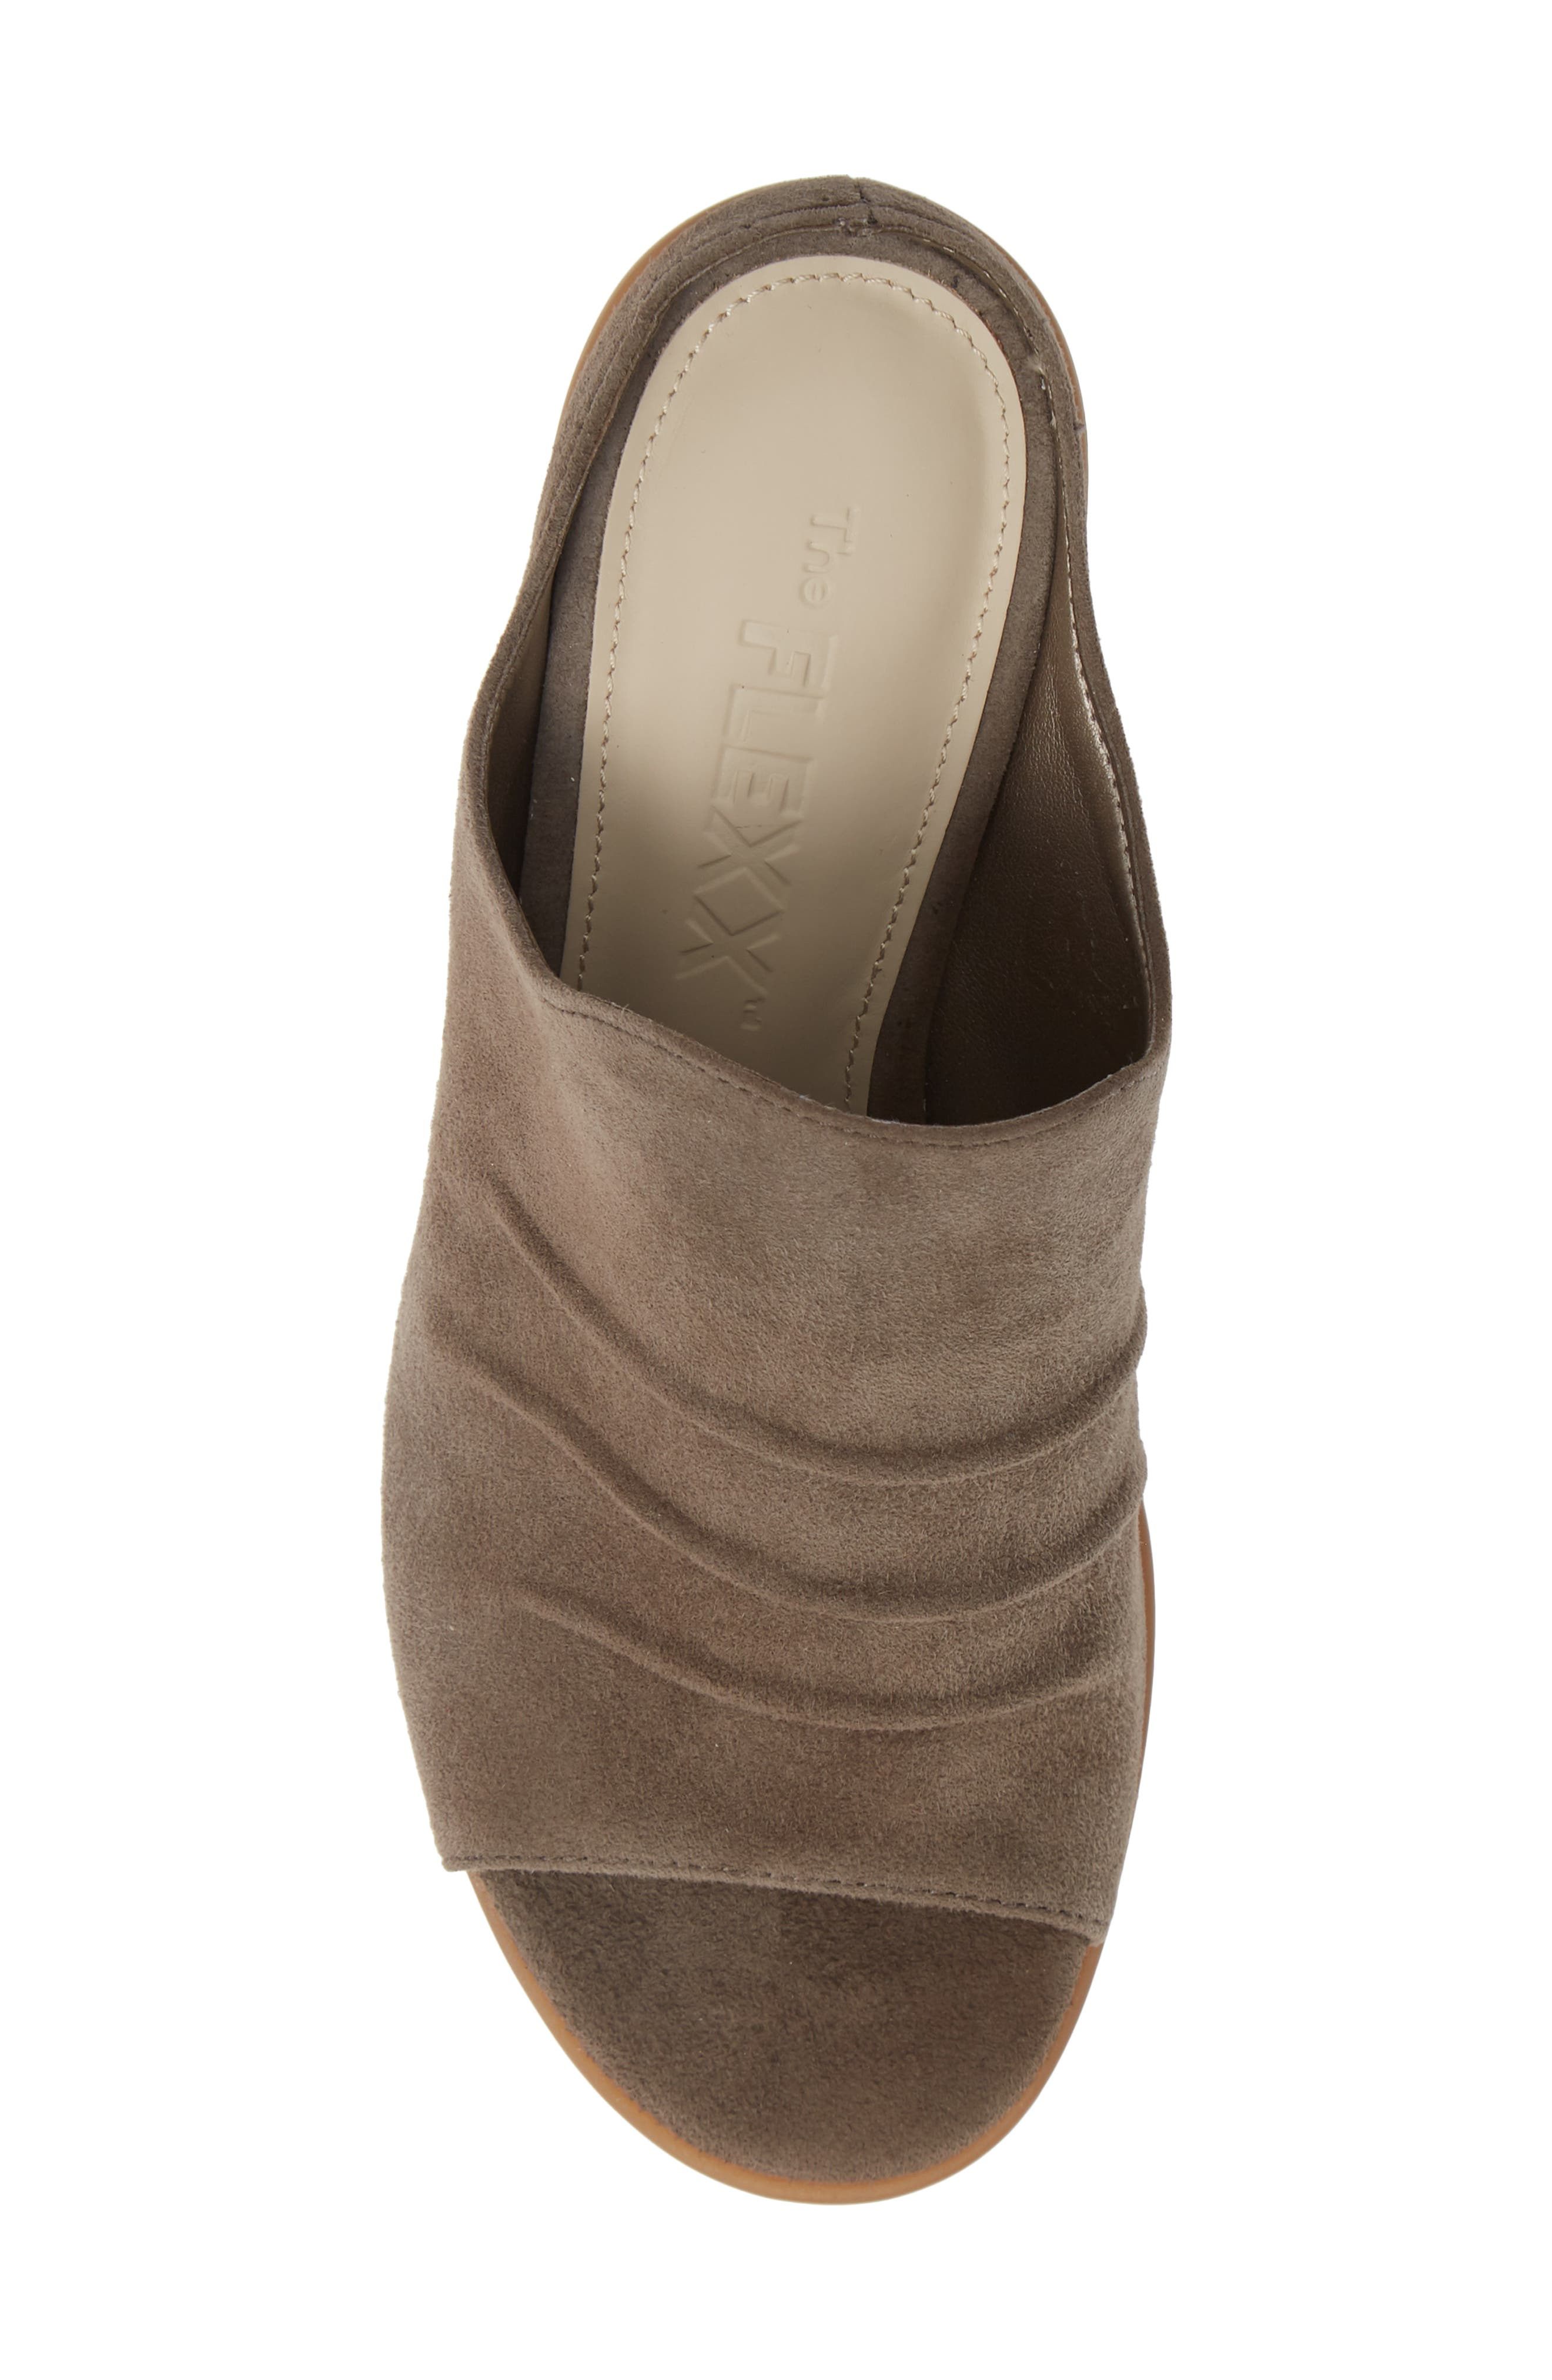 Aim to Pleat Mule,                             Alternate thumbnail 5, color,                             BROWN LEATHER